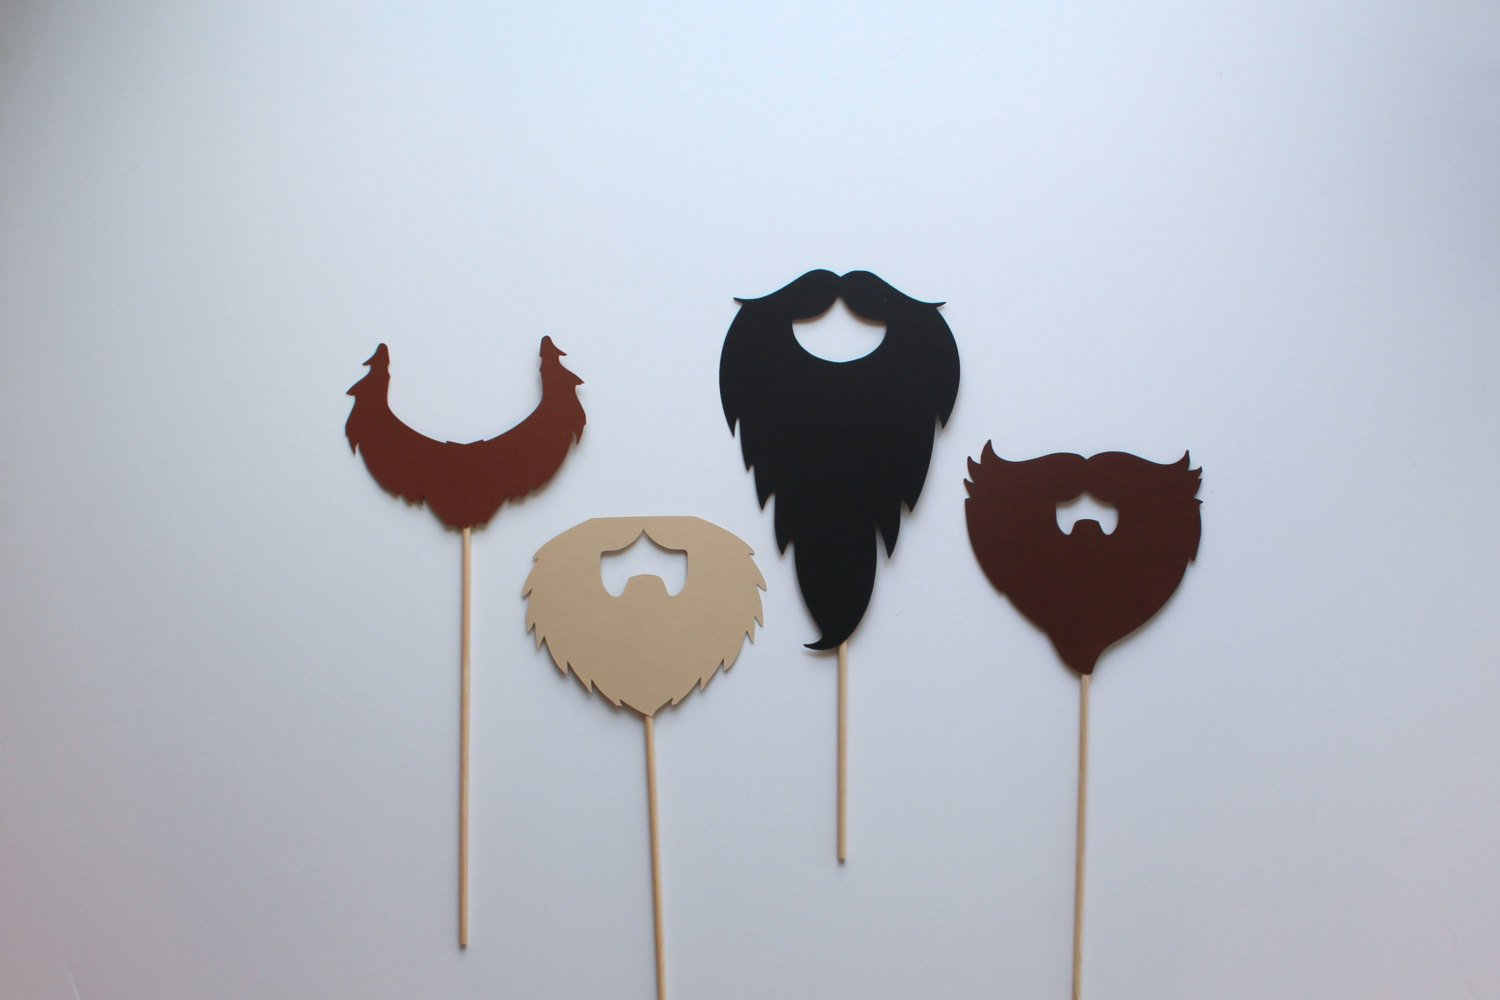 Beard Props for Photo Booth by Paper and Pancakes 12 Beards (3 Set)